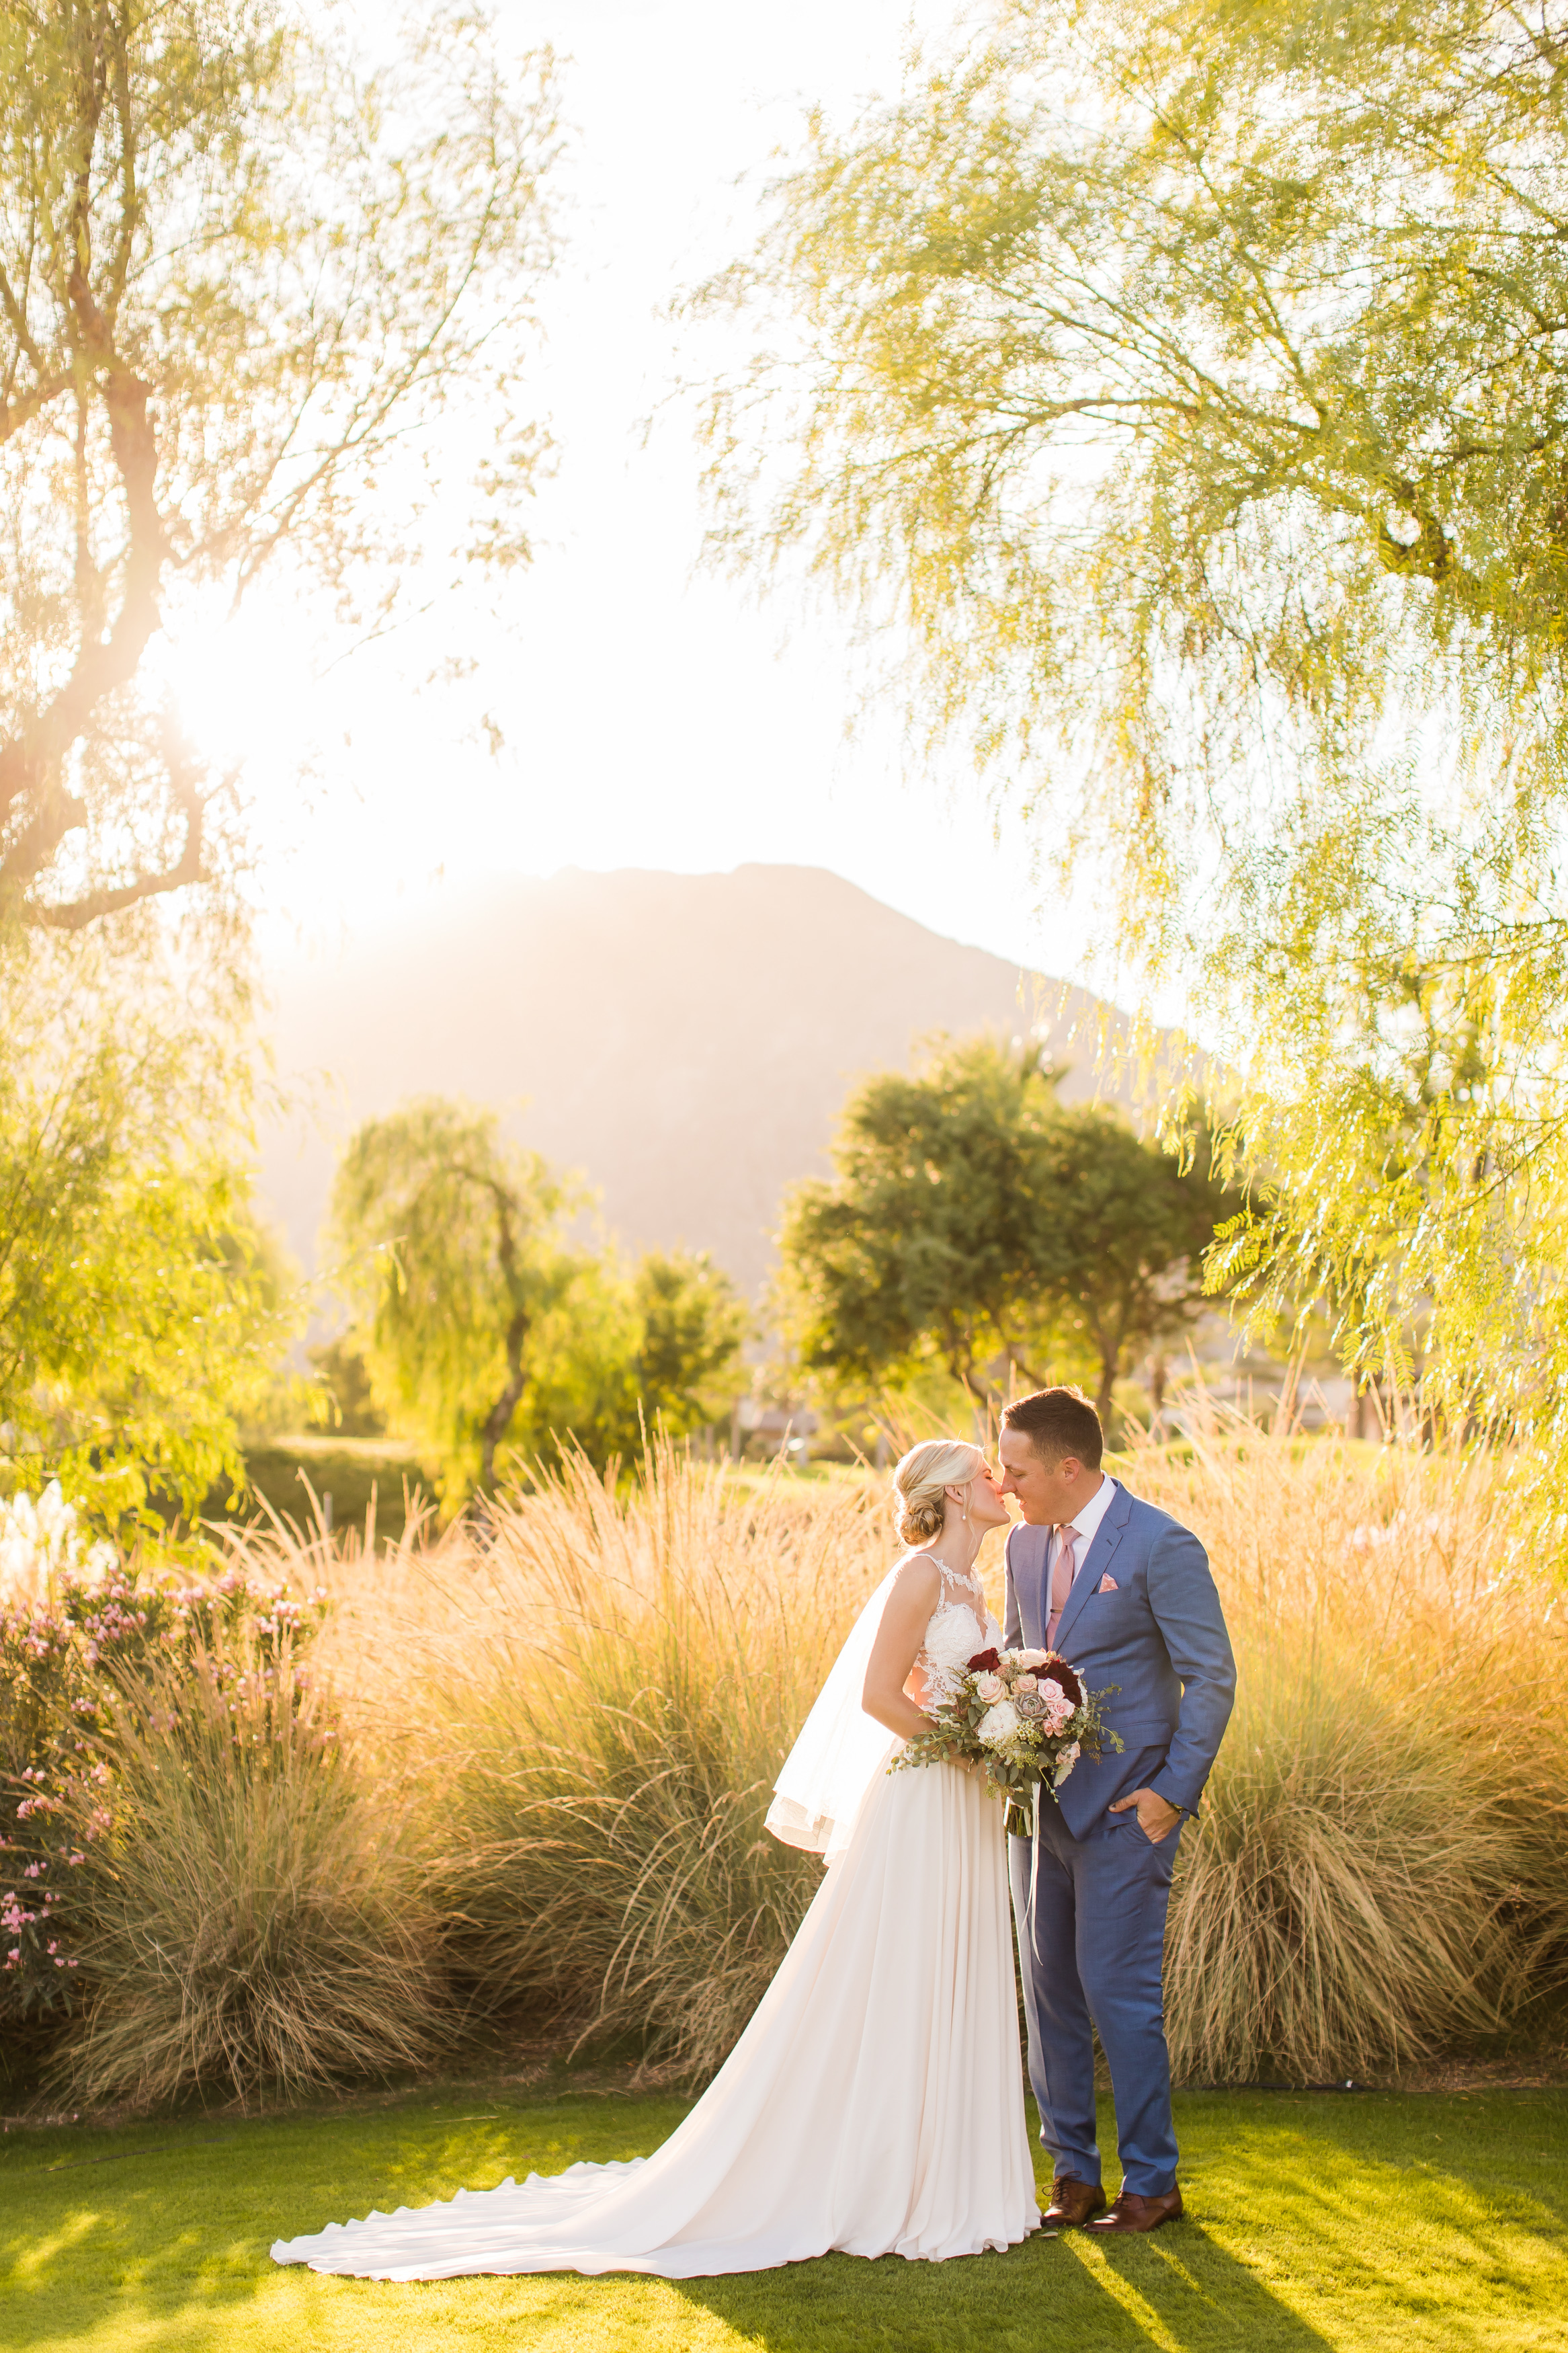 The first and last images of this wedding feature sum up what I love most about this dreamy day